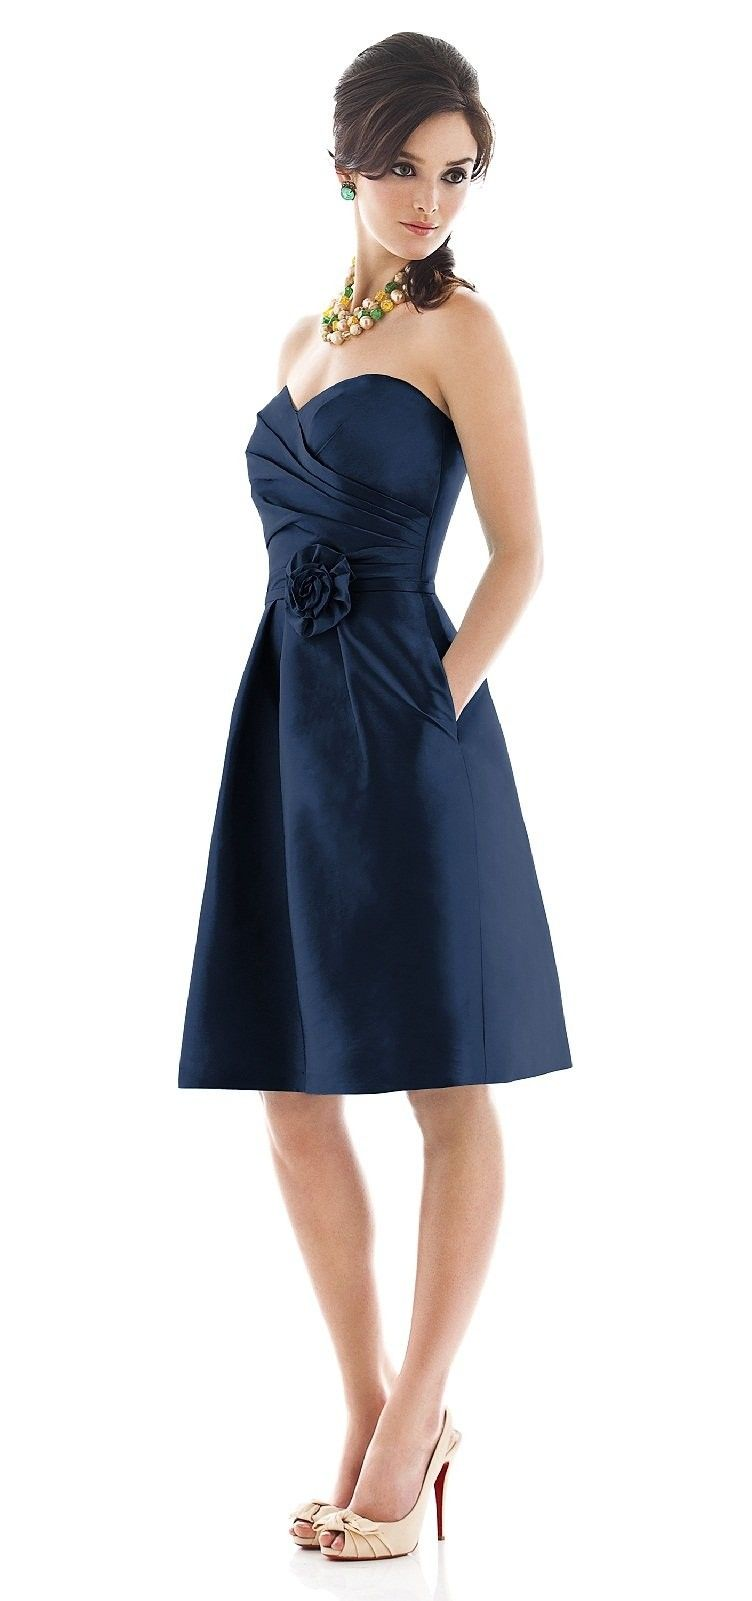 Bridesmaids dress but in a different color wedding i am not